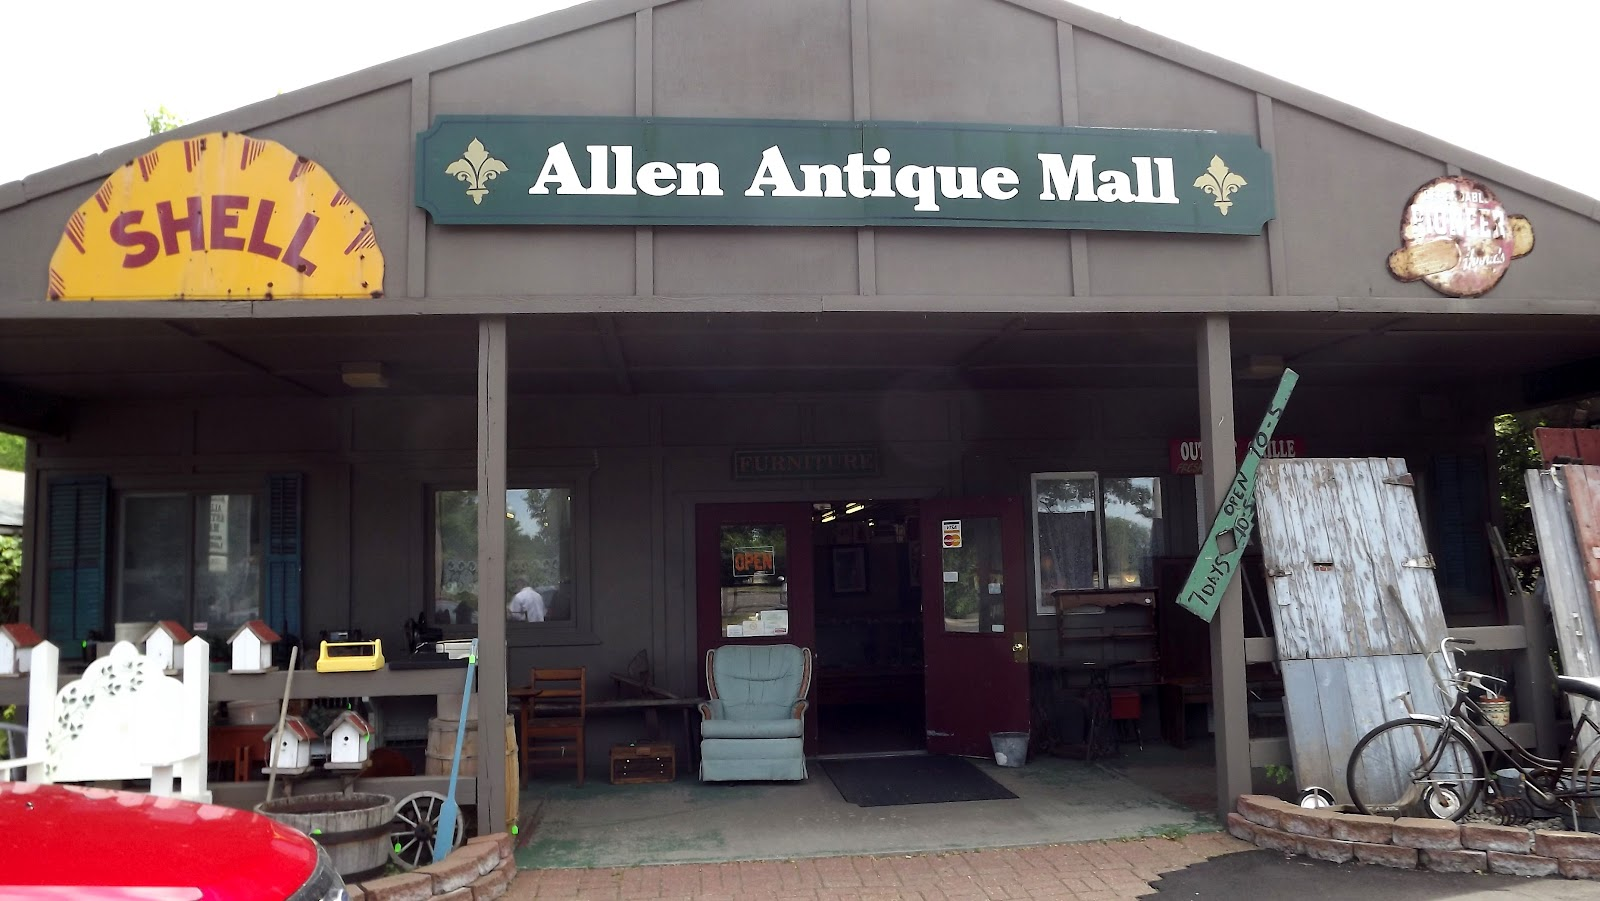 allen michigan antique stores Antique Mall Allen Michigan allen michigan antique stores